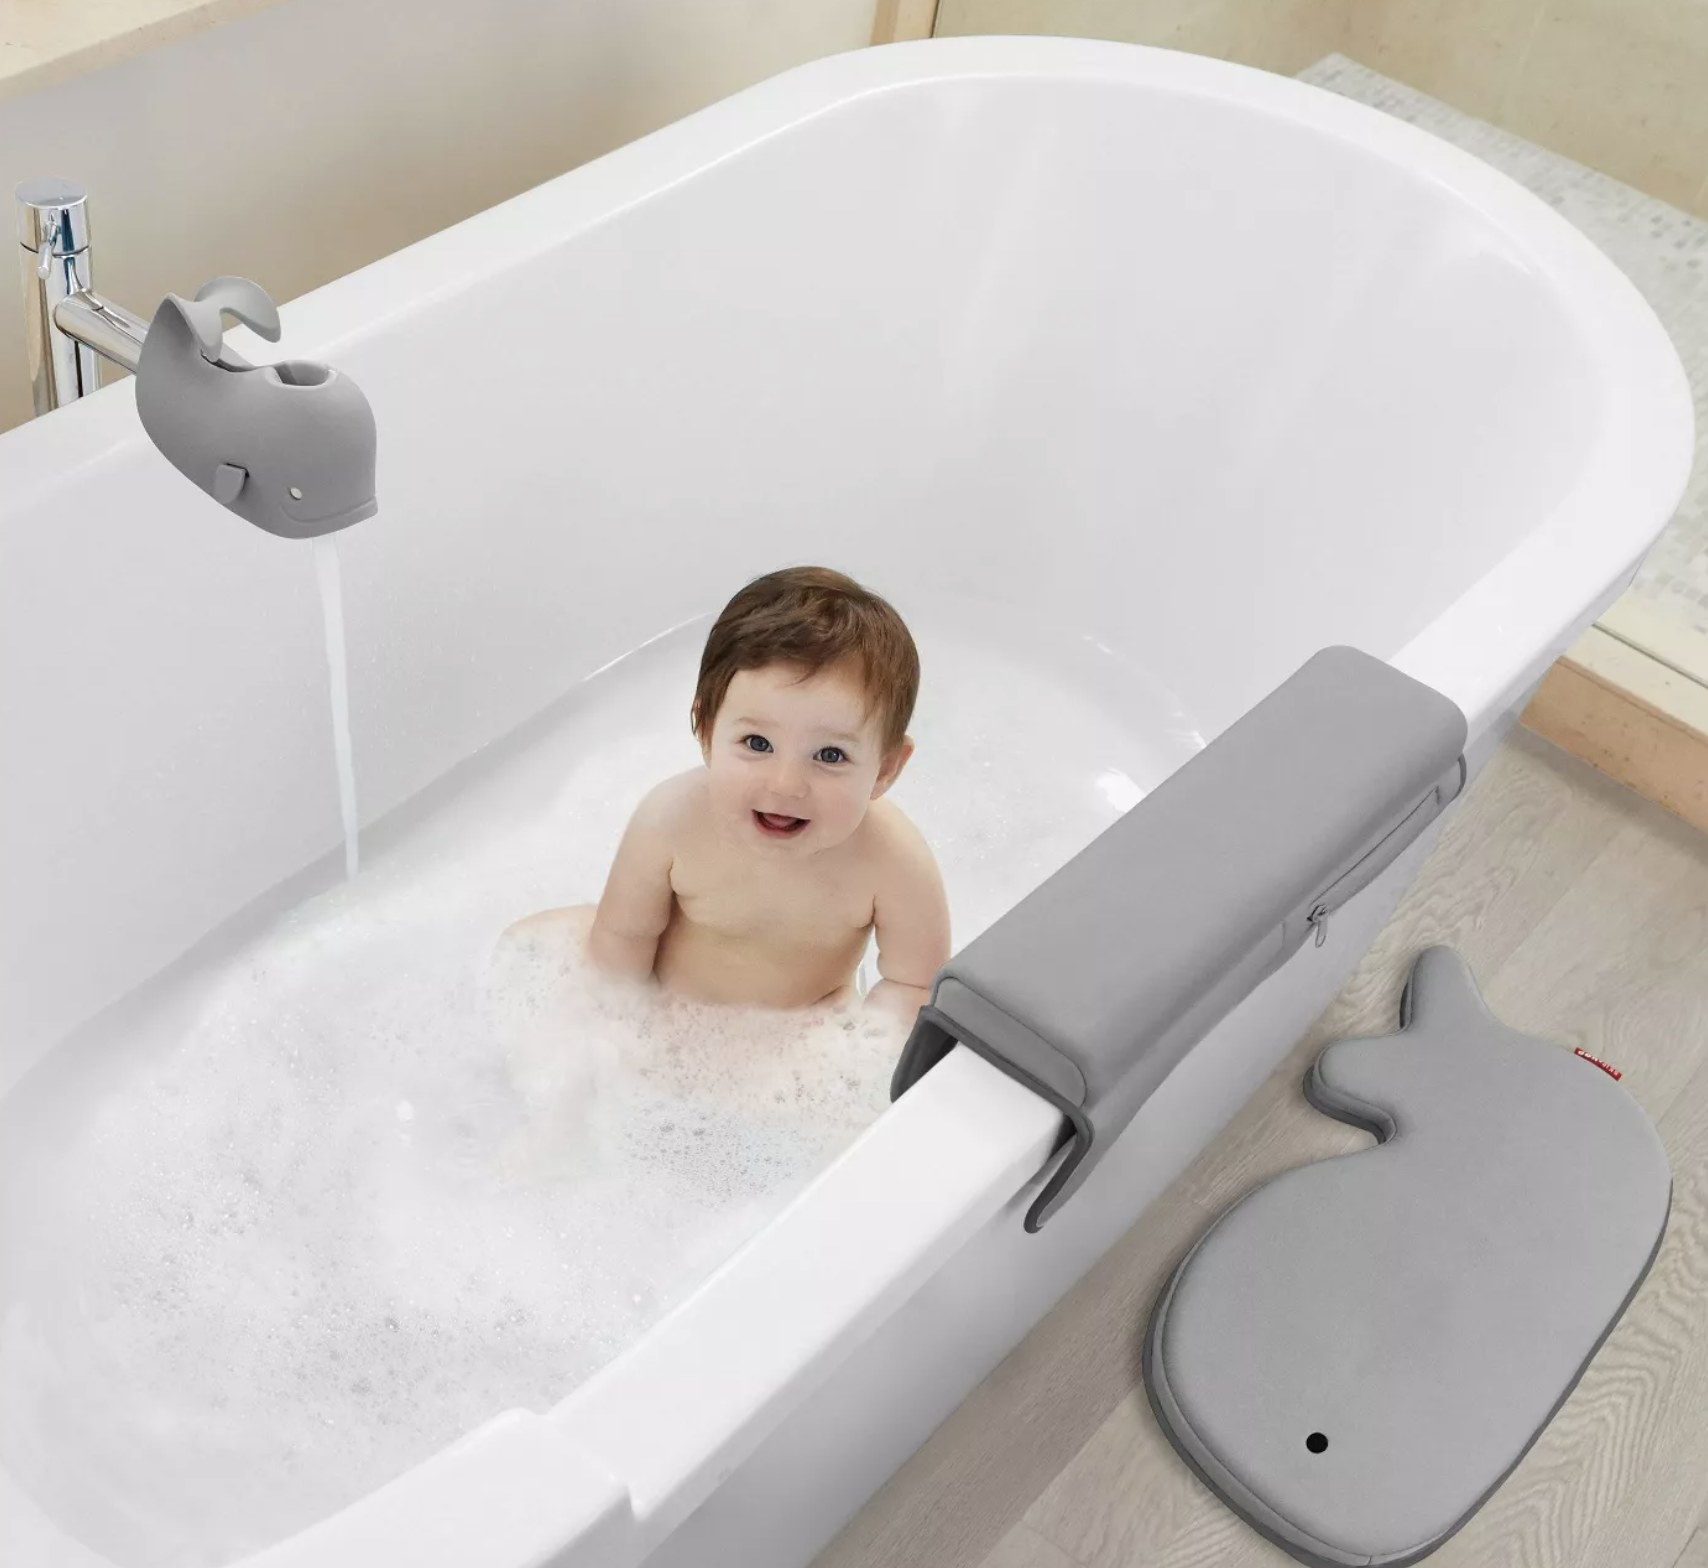 A toddler model in with gray whale bath mats and spout cover